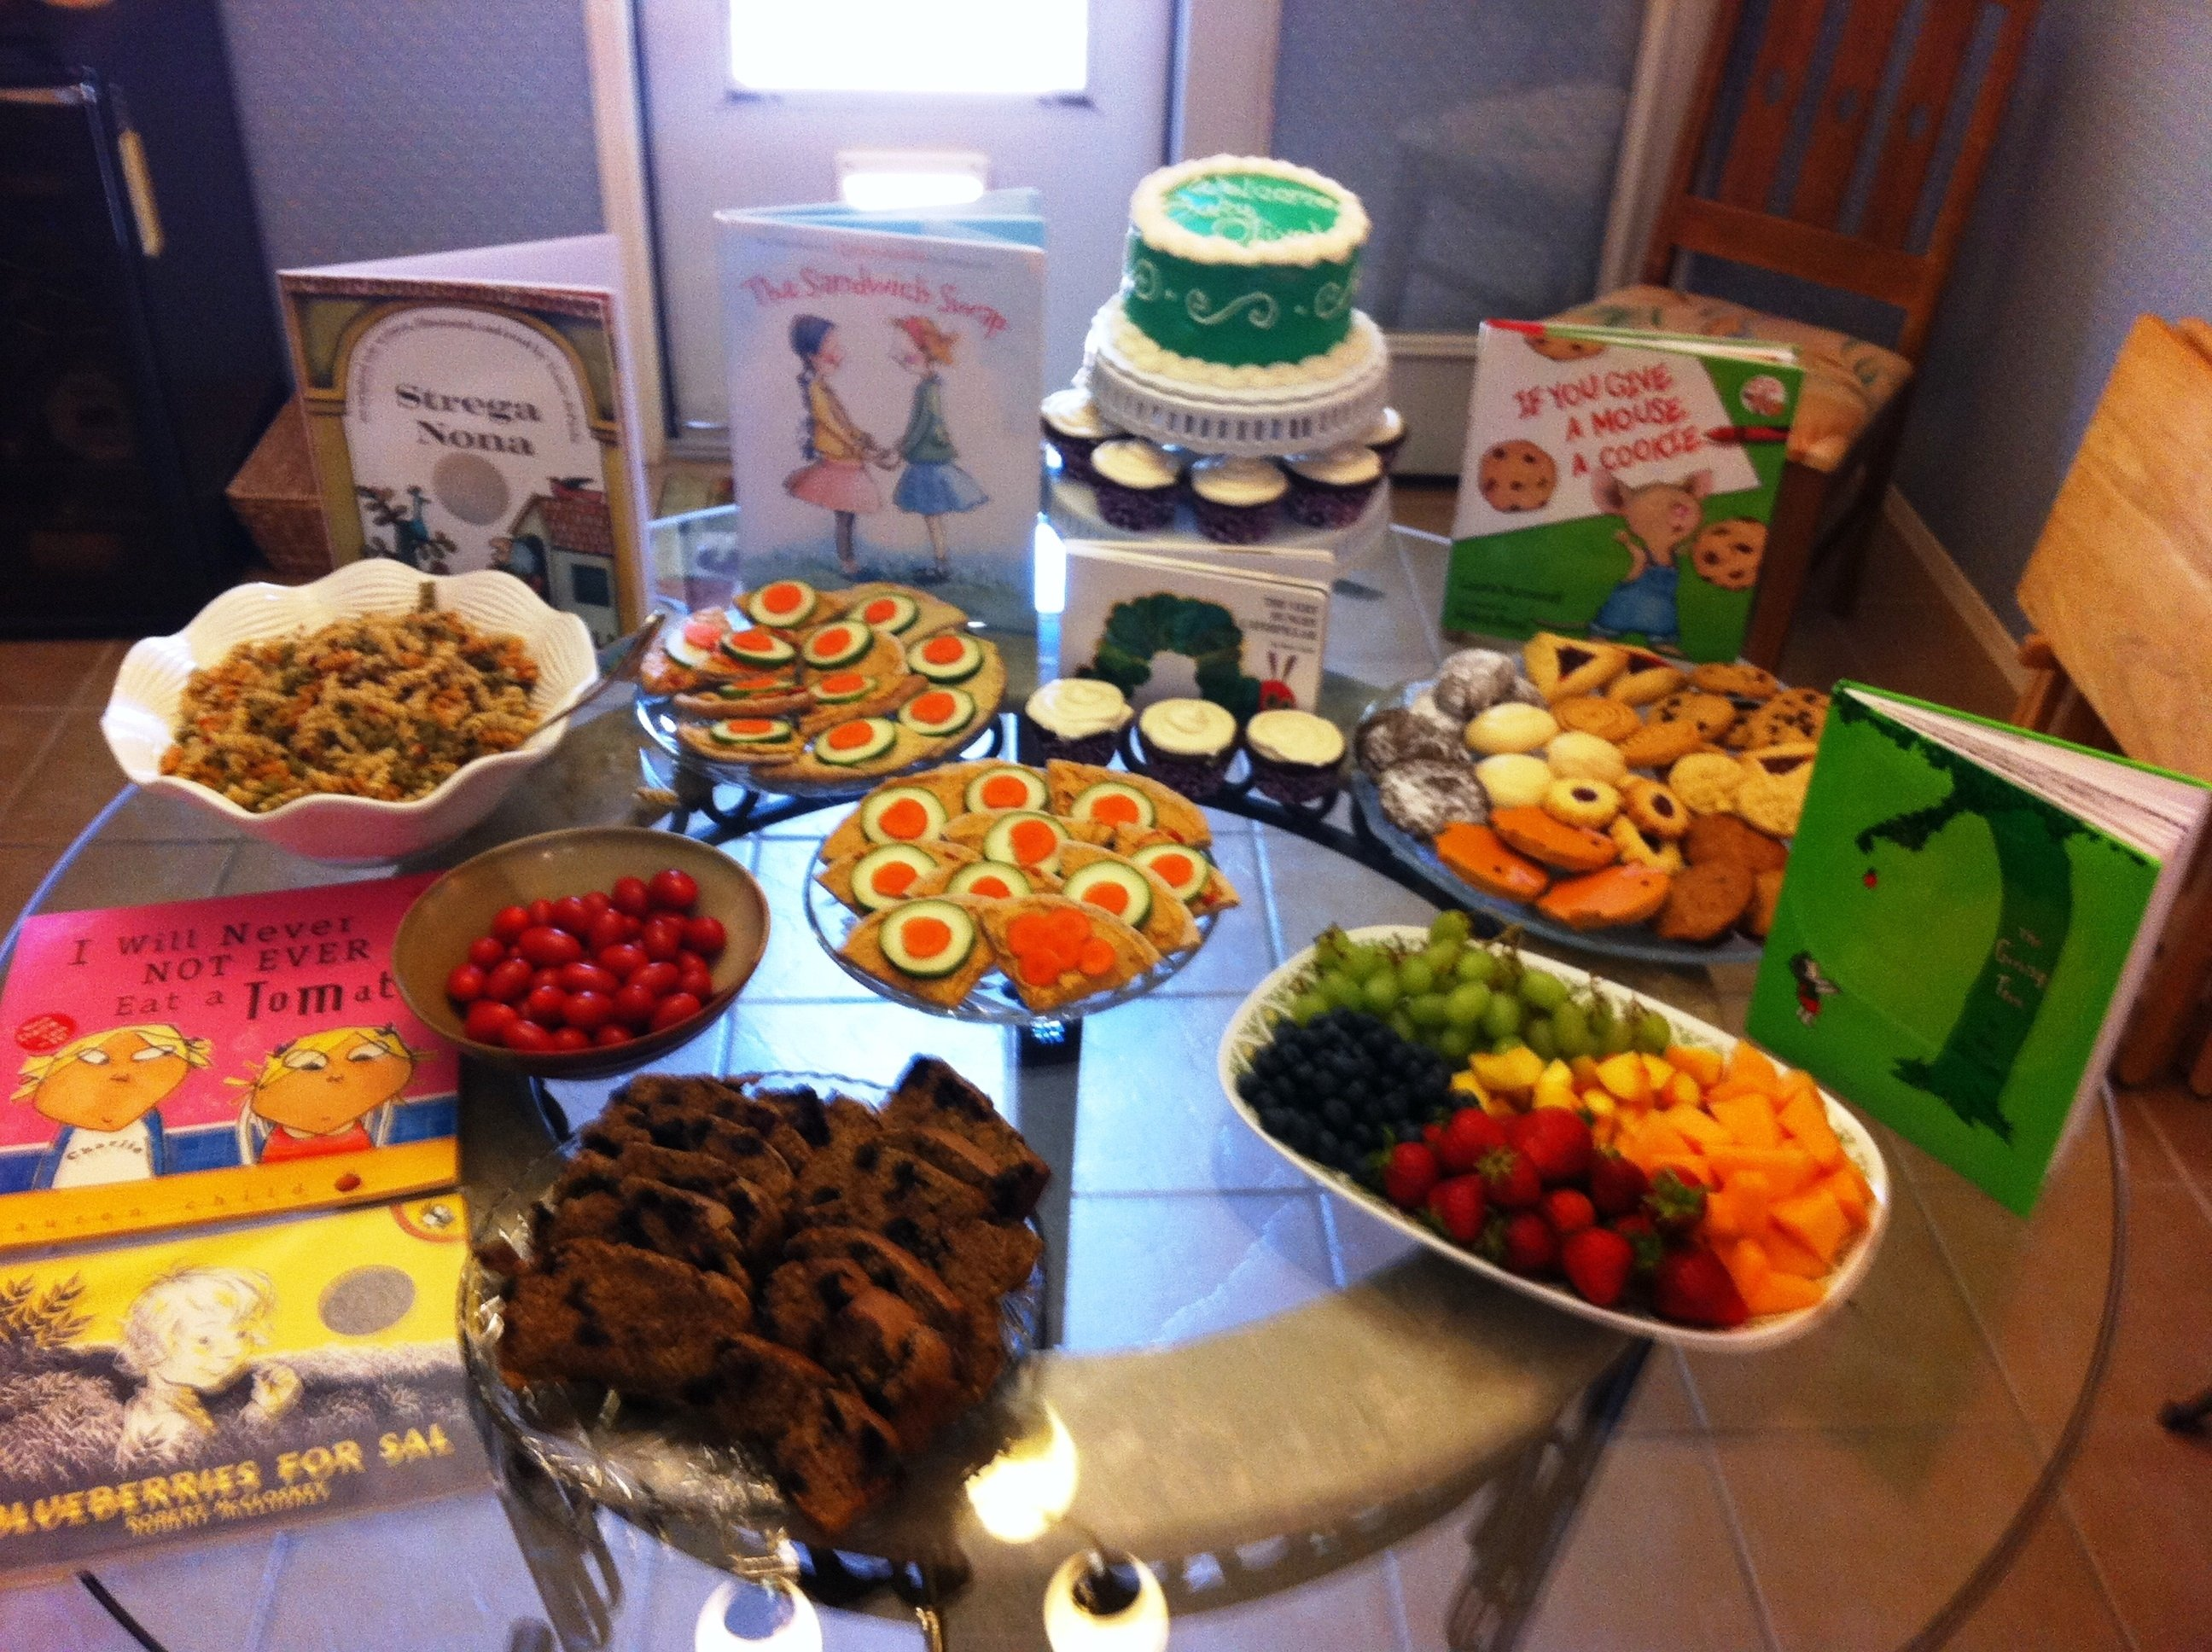 10 Stylish Food For Baby Shower Ideas cool baby shower finger food ideas budget and baby shower ideas kits 14 2020